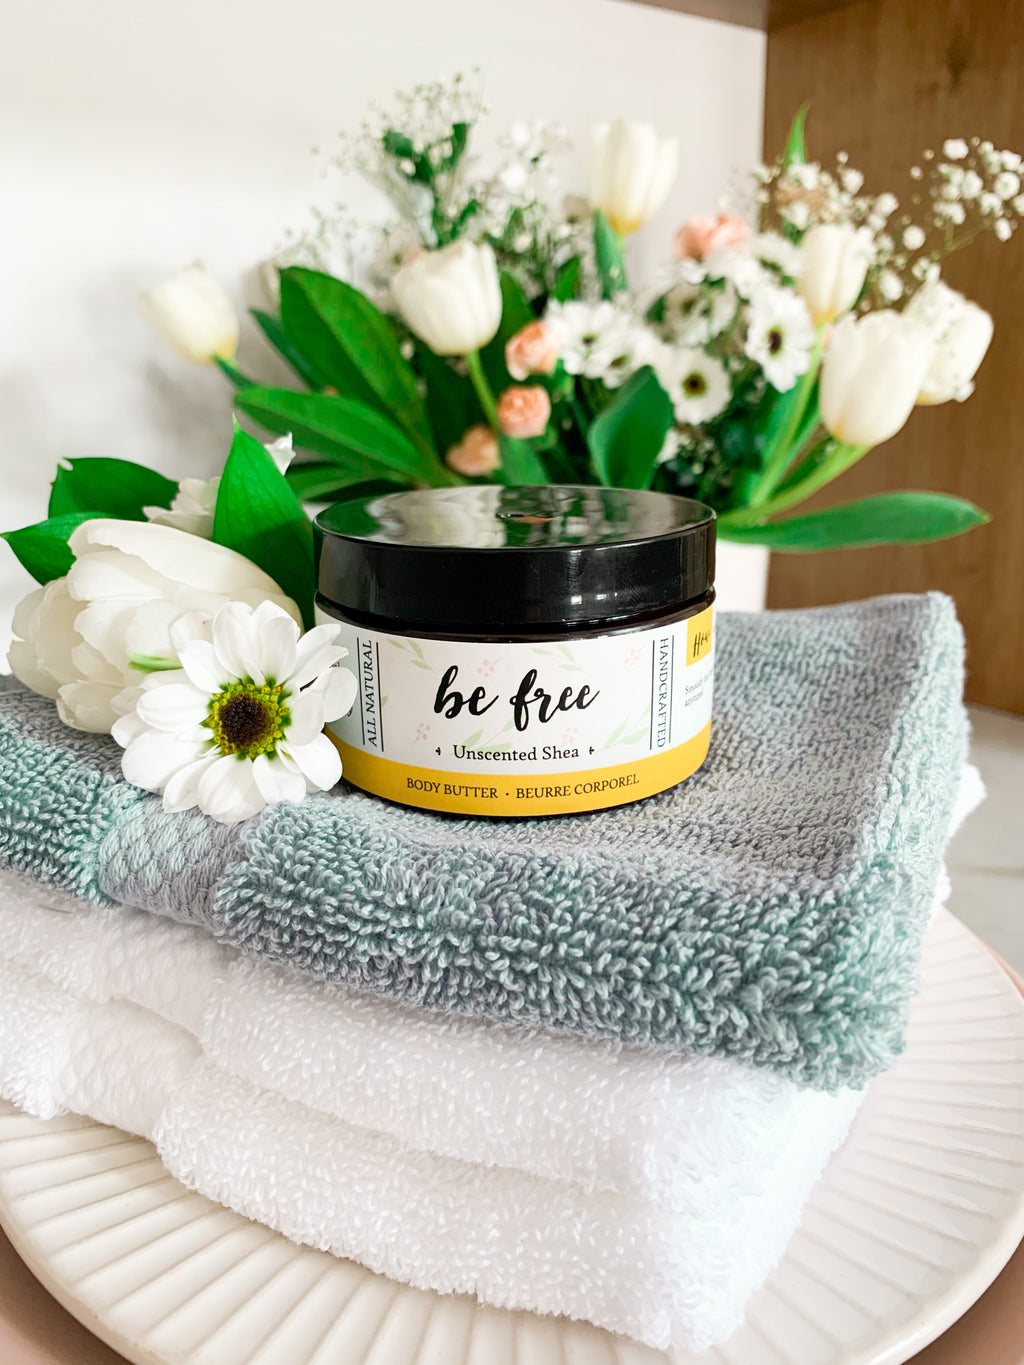 Be Free - Unscented Shea Butter (for sensitive skin types)